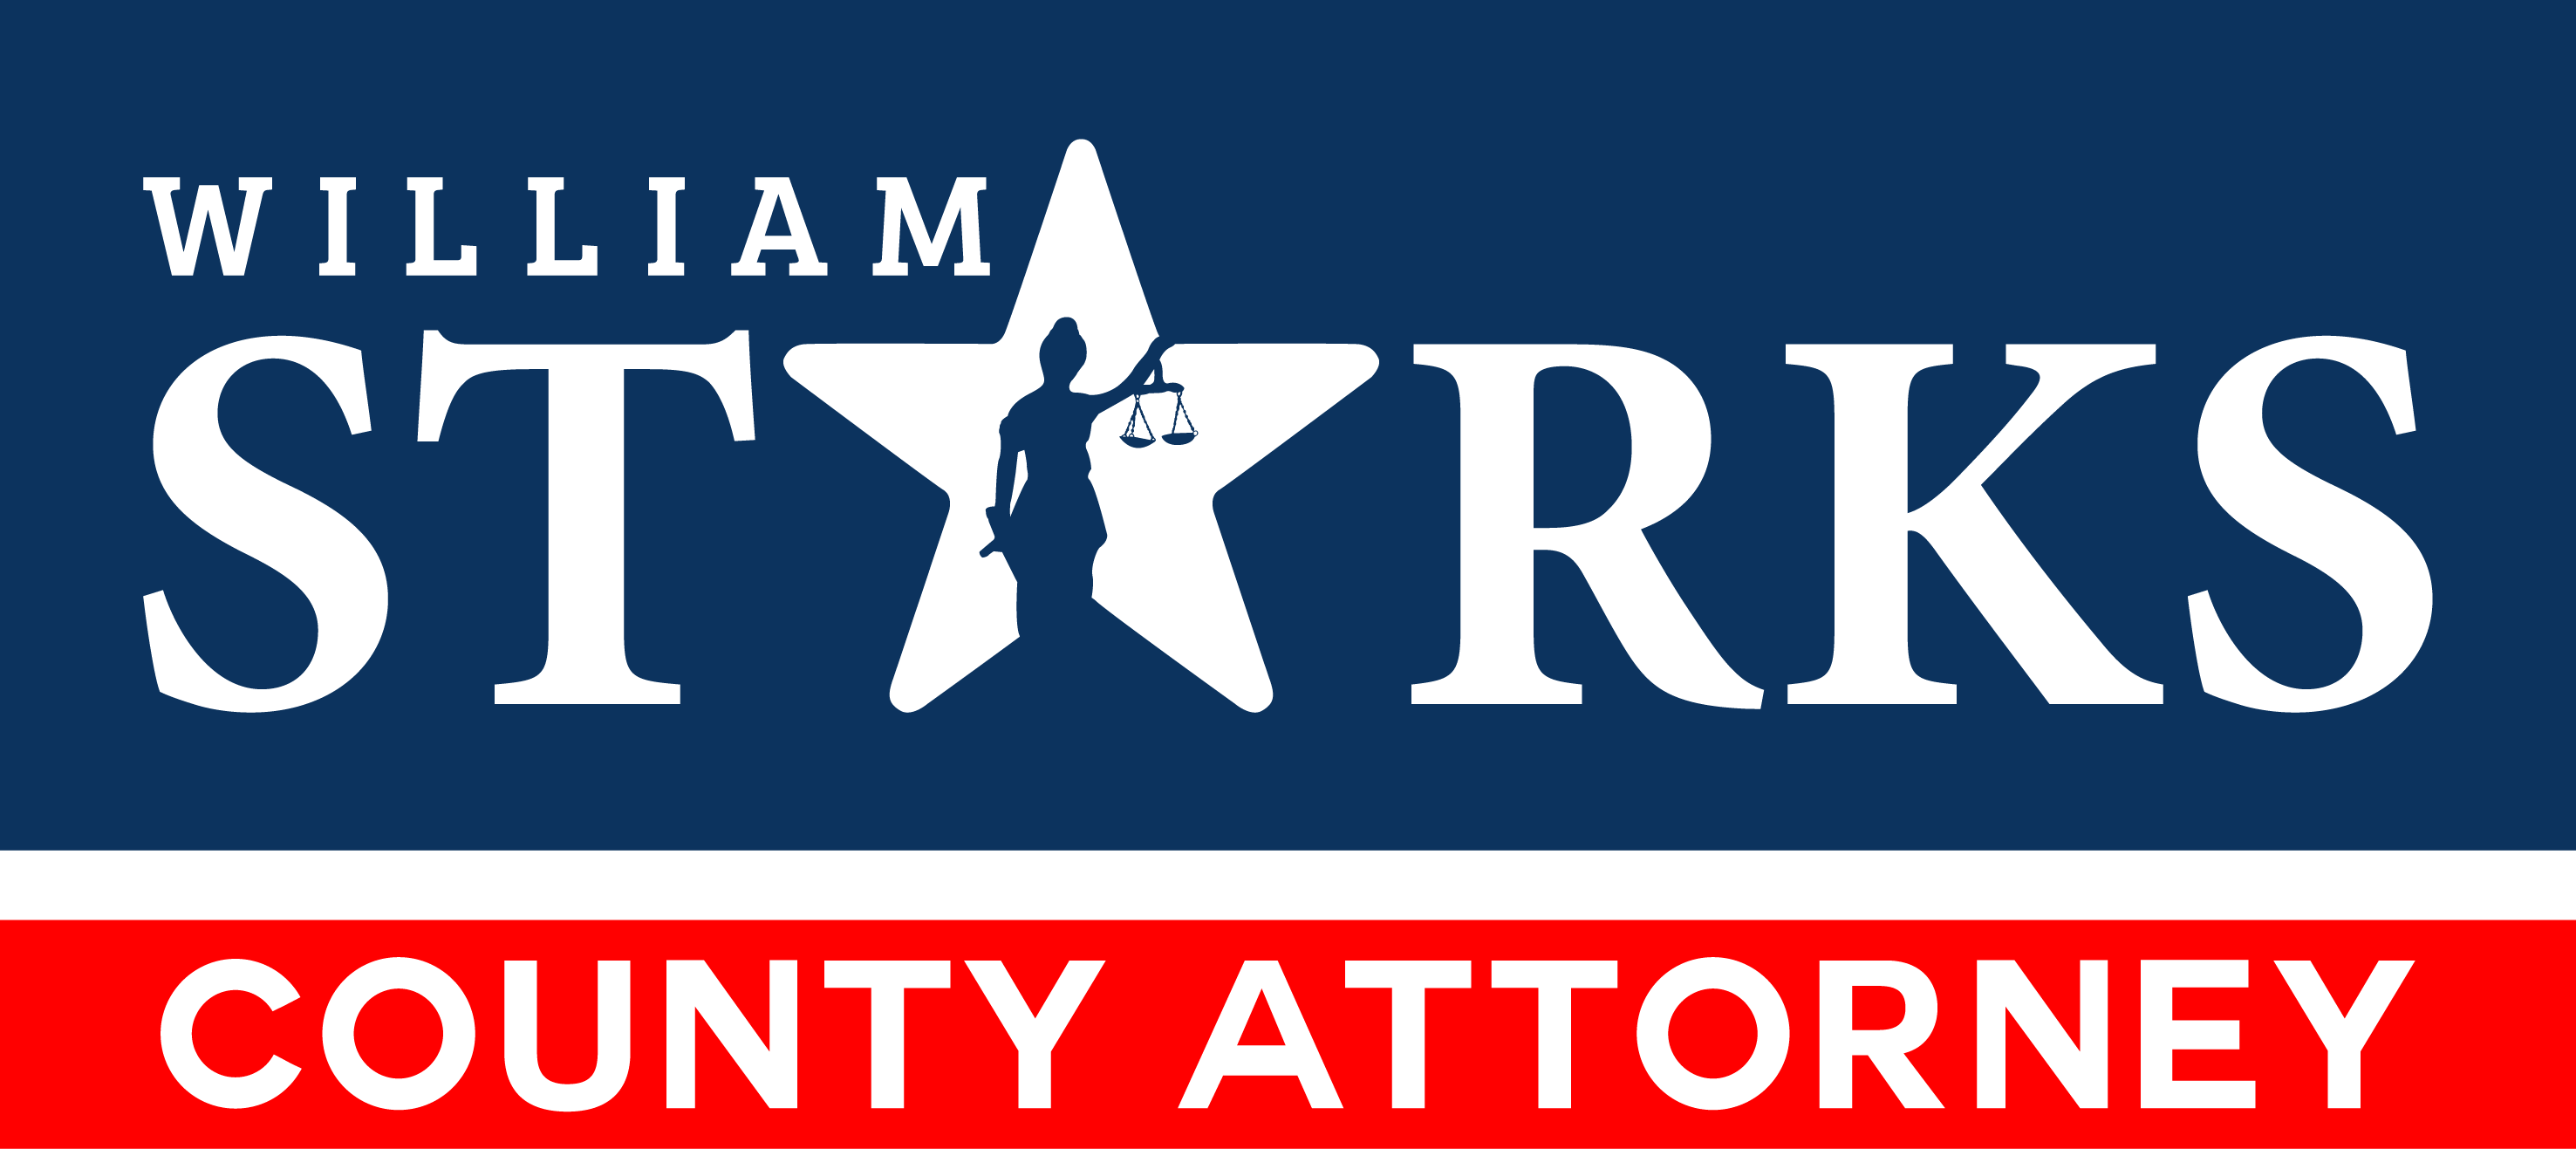 Create political logo for William Starks for County Attorney